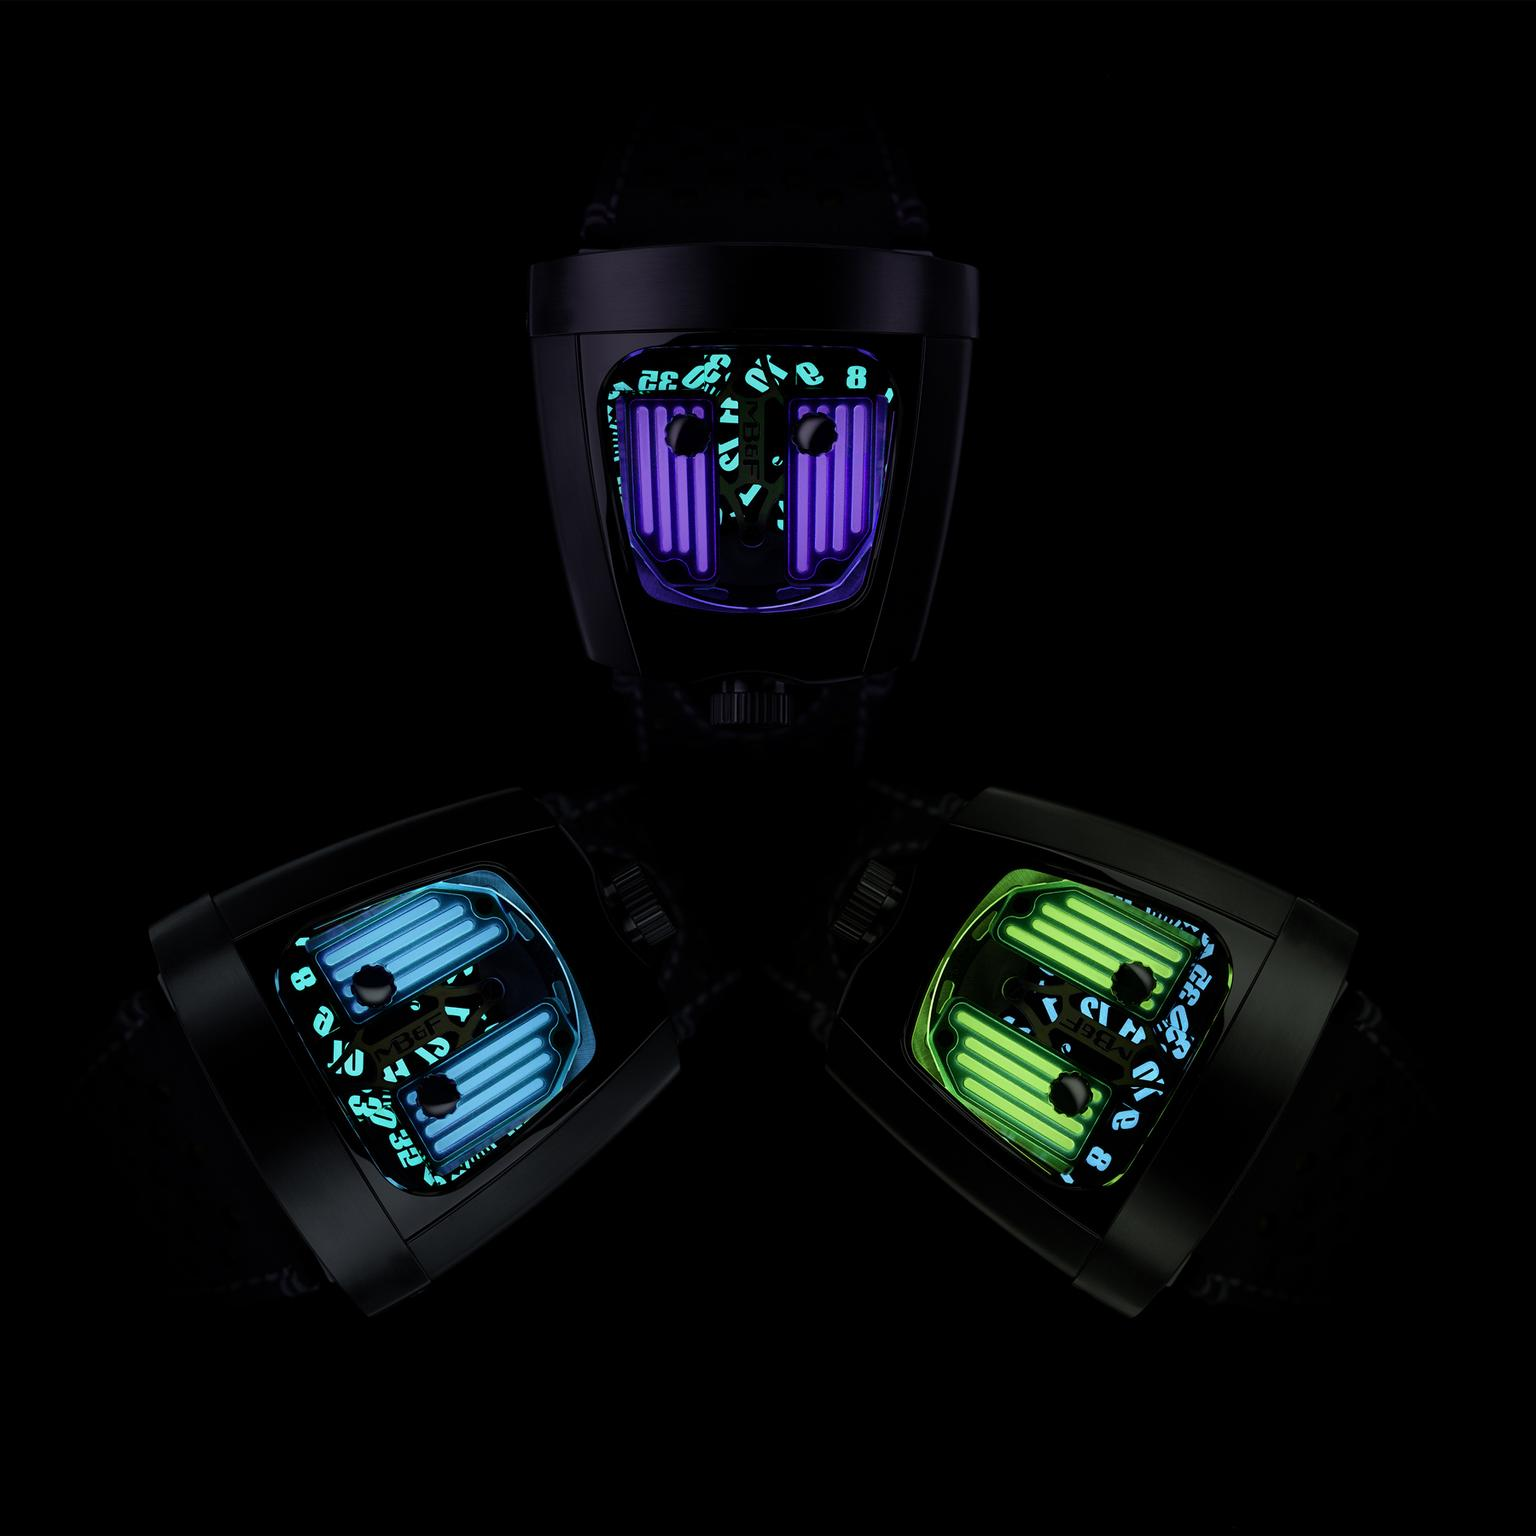 MB&F HMX Black Badger watch